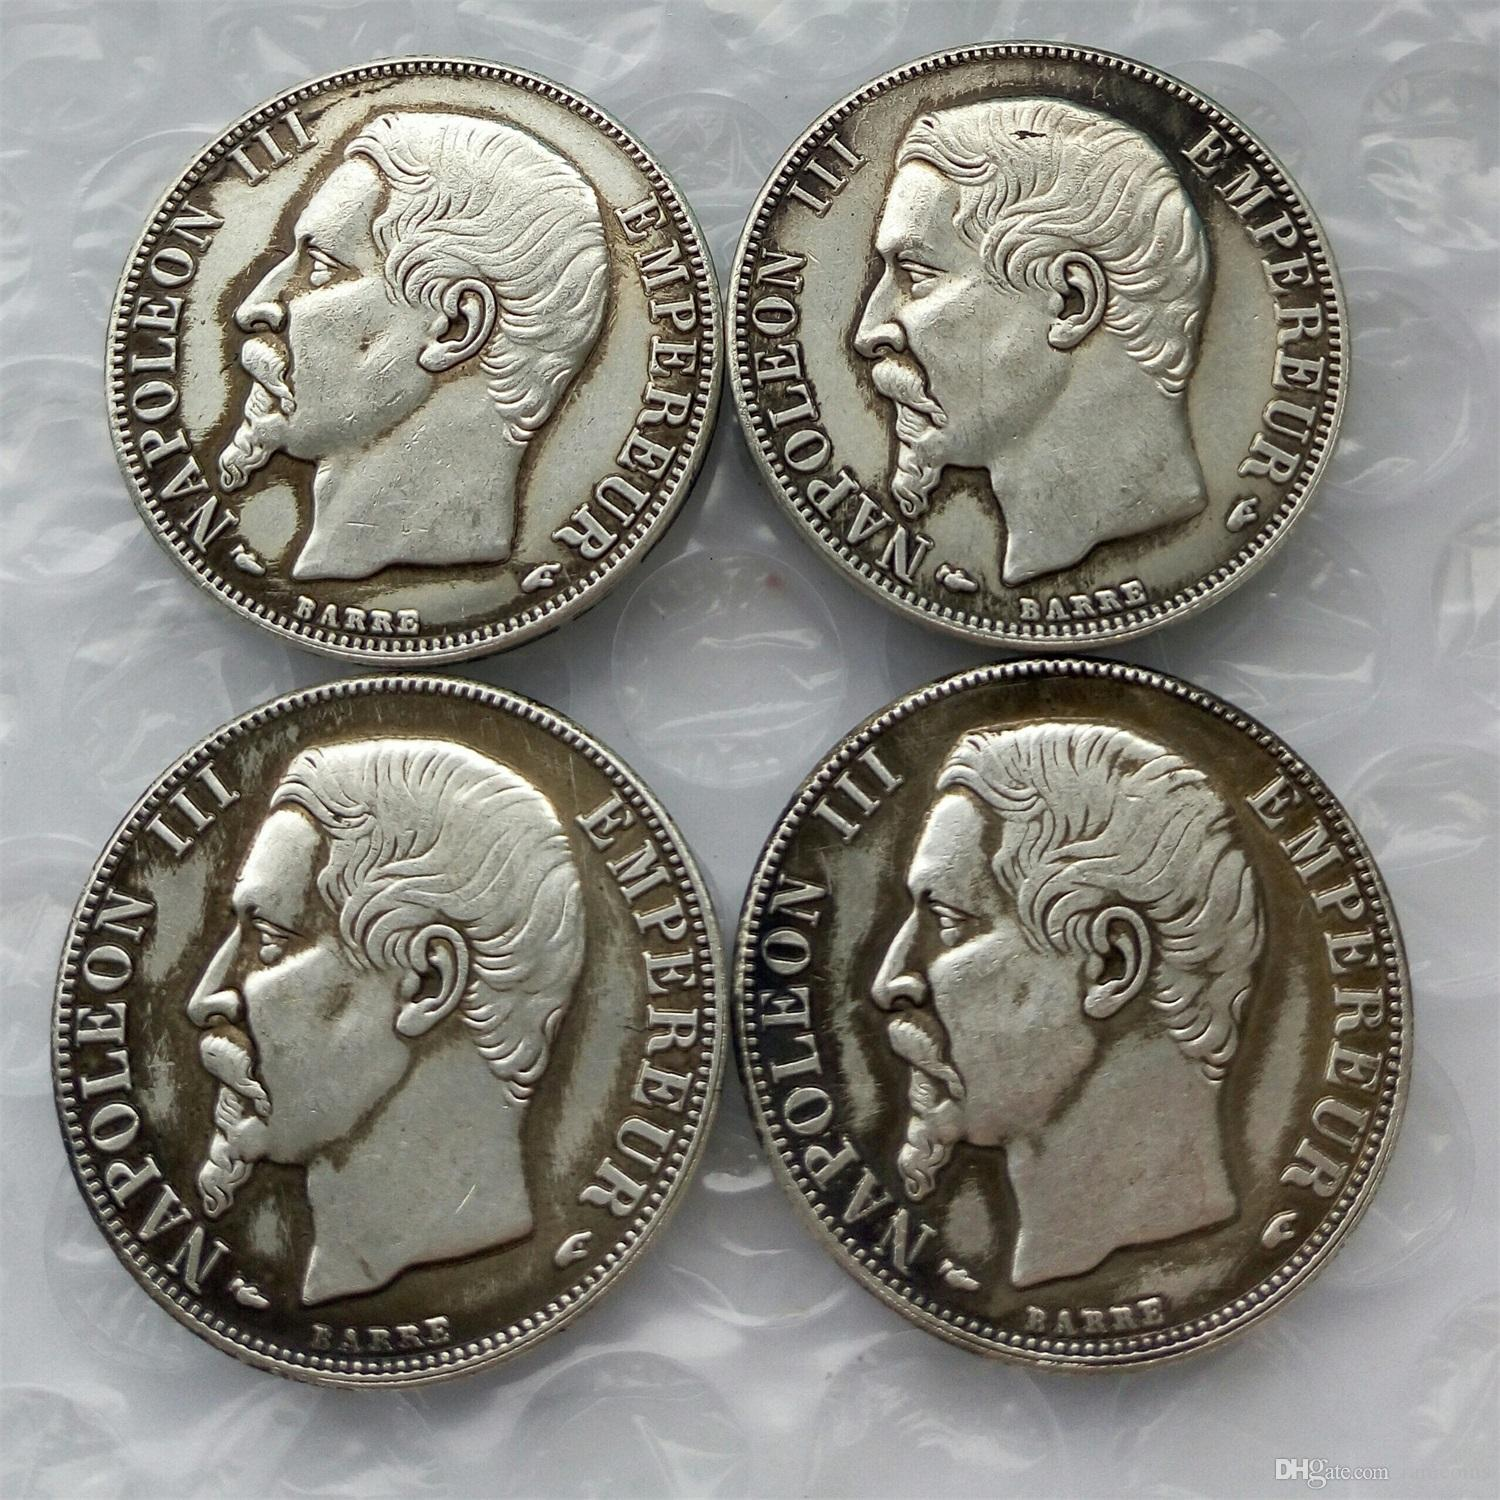 France A set of( 1853 1855 1856 1863)-A 4pcs Napoleon III 2 Francs Silver  Coin Whole Crafts Free Shipping Promotion Cheap Factory Price nice